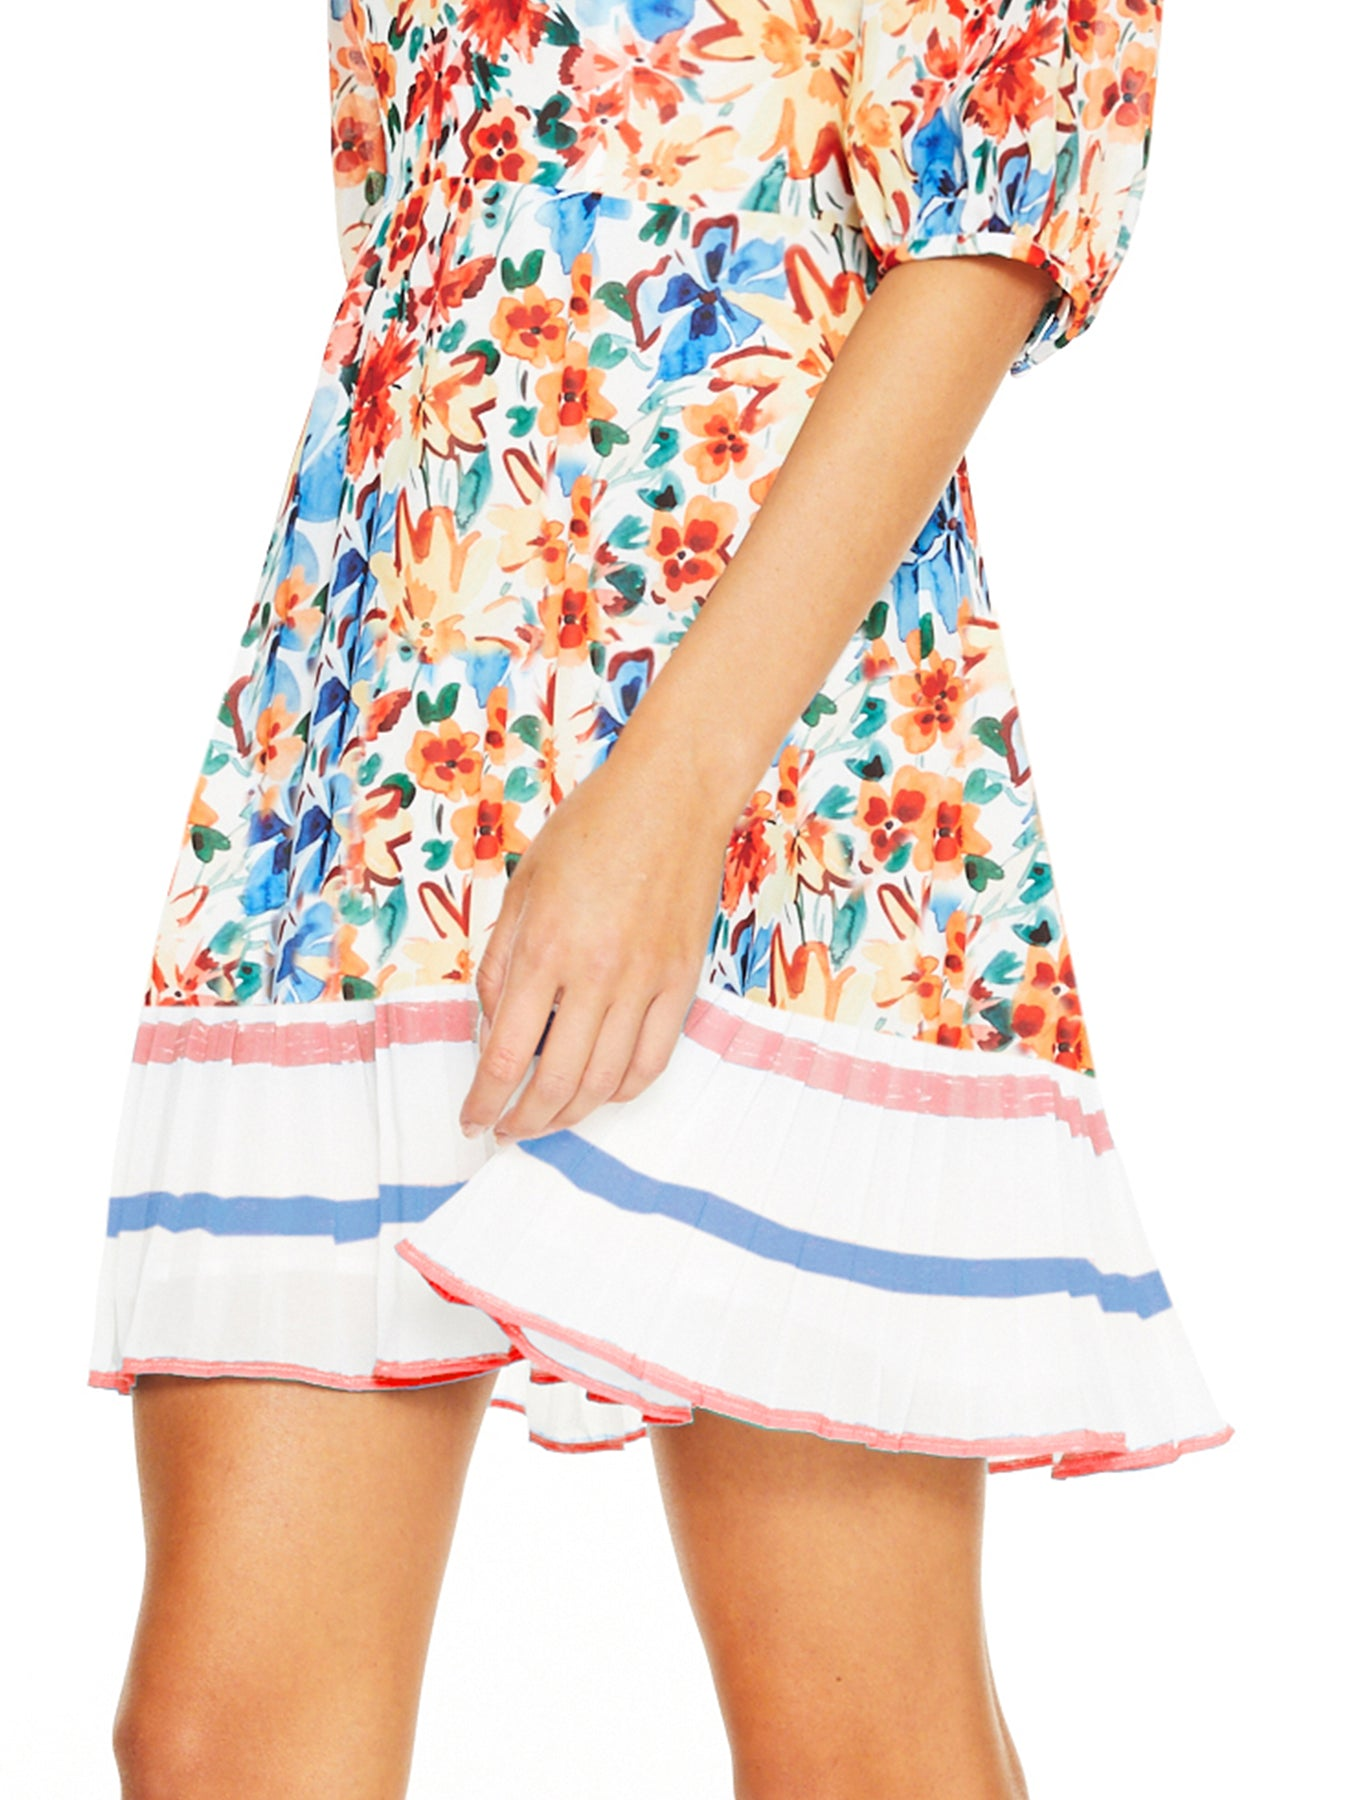 MERENGUE MINI DRESS